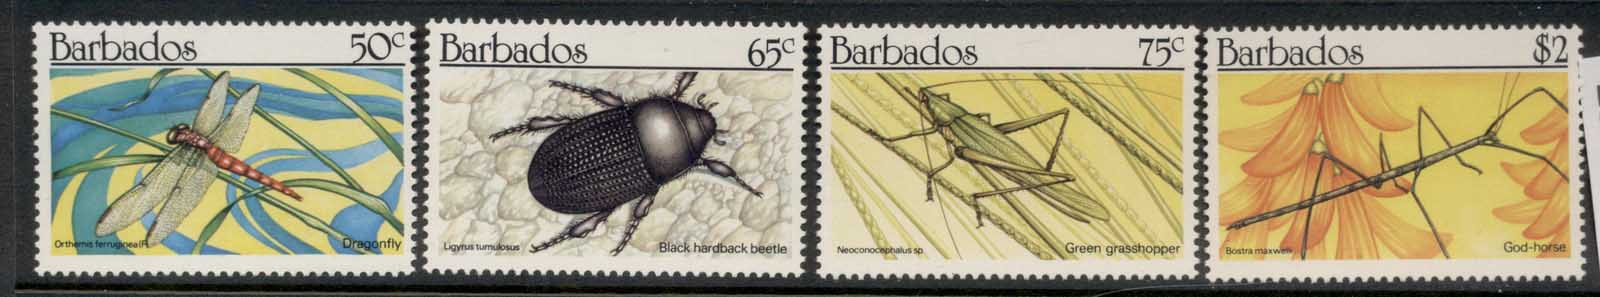 Barbados 1990 Insects MUH